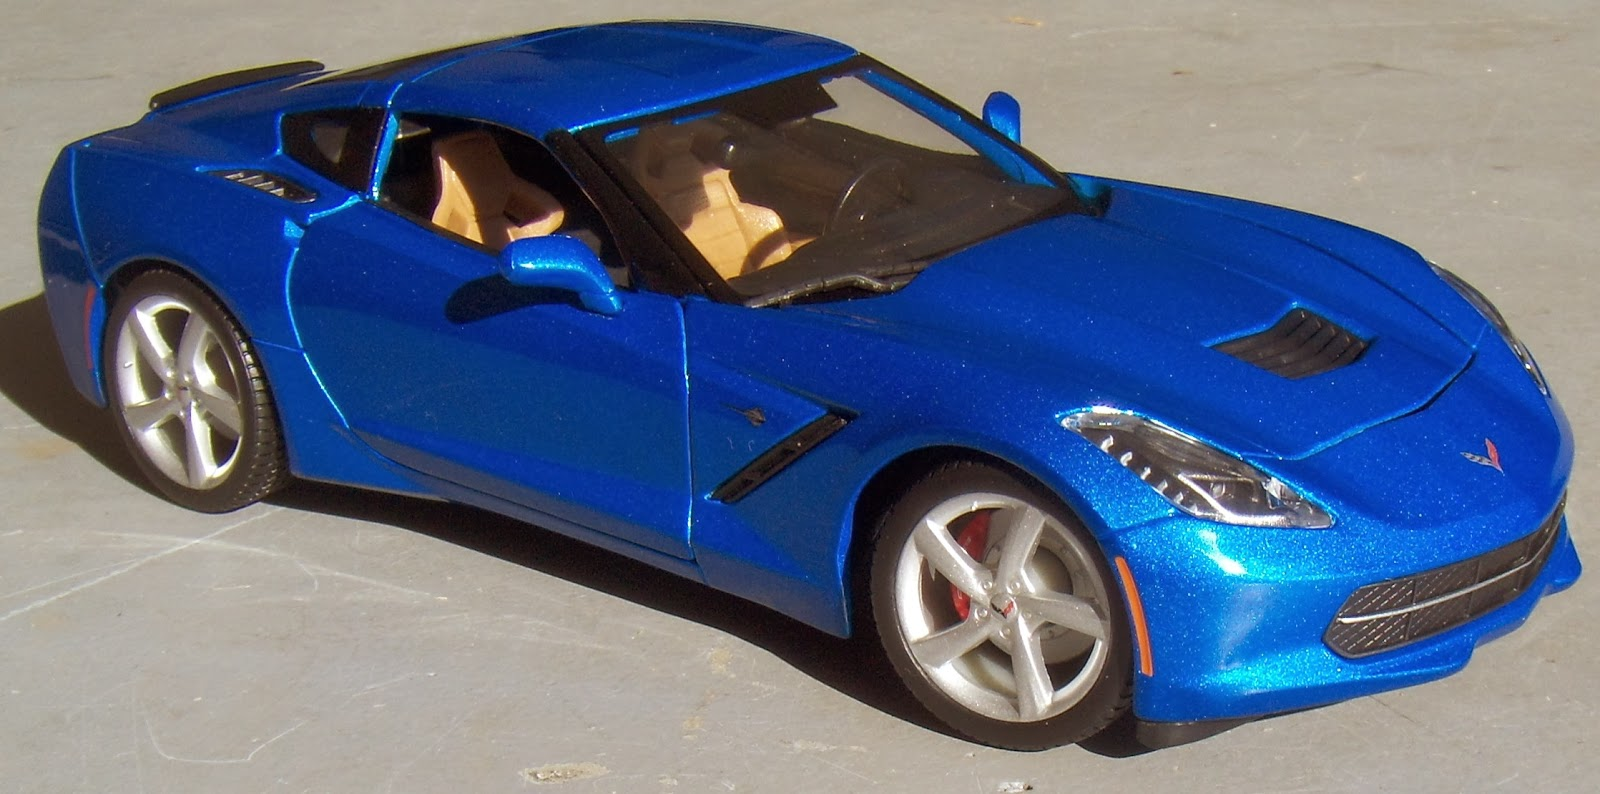 As much as i like the corvette the c6 generation had styling that was great when new but got old after a few years i was hoping the 2014 c7 corvette